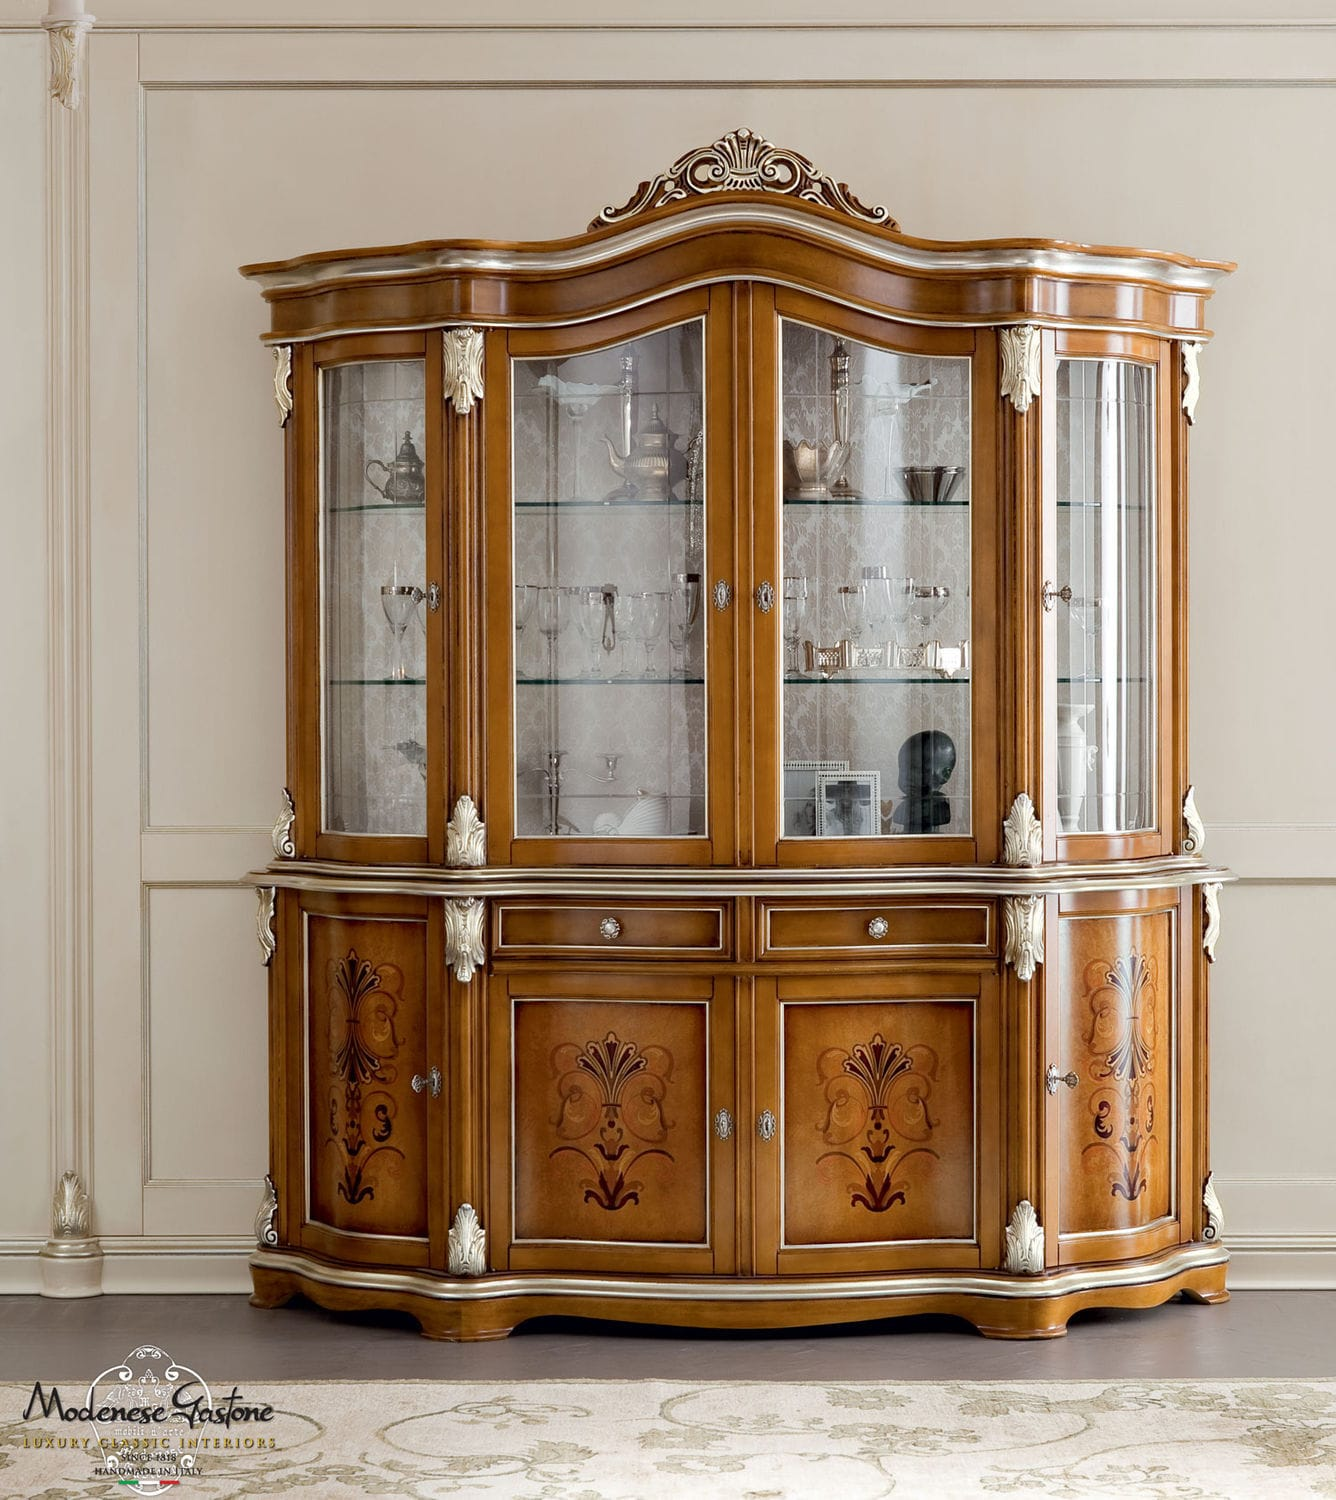 ... Classic China Cabinet / Glass / Wooden BELLA VITA Modenese Gastone  Luxury Classic Furniture ...